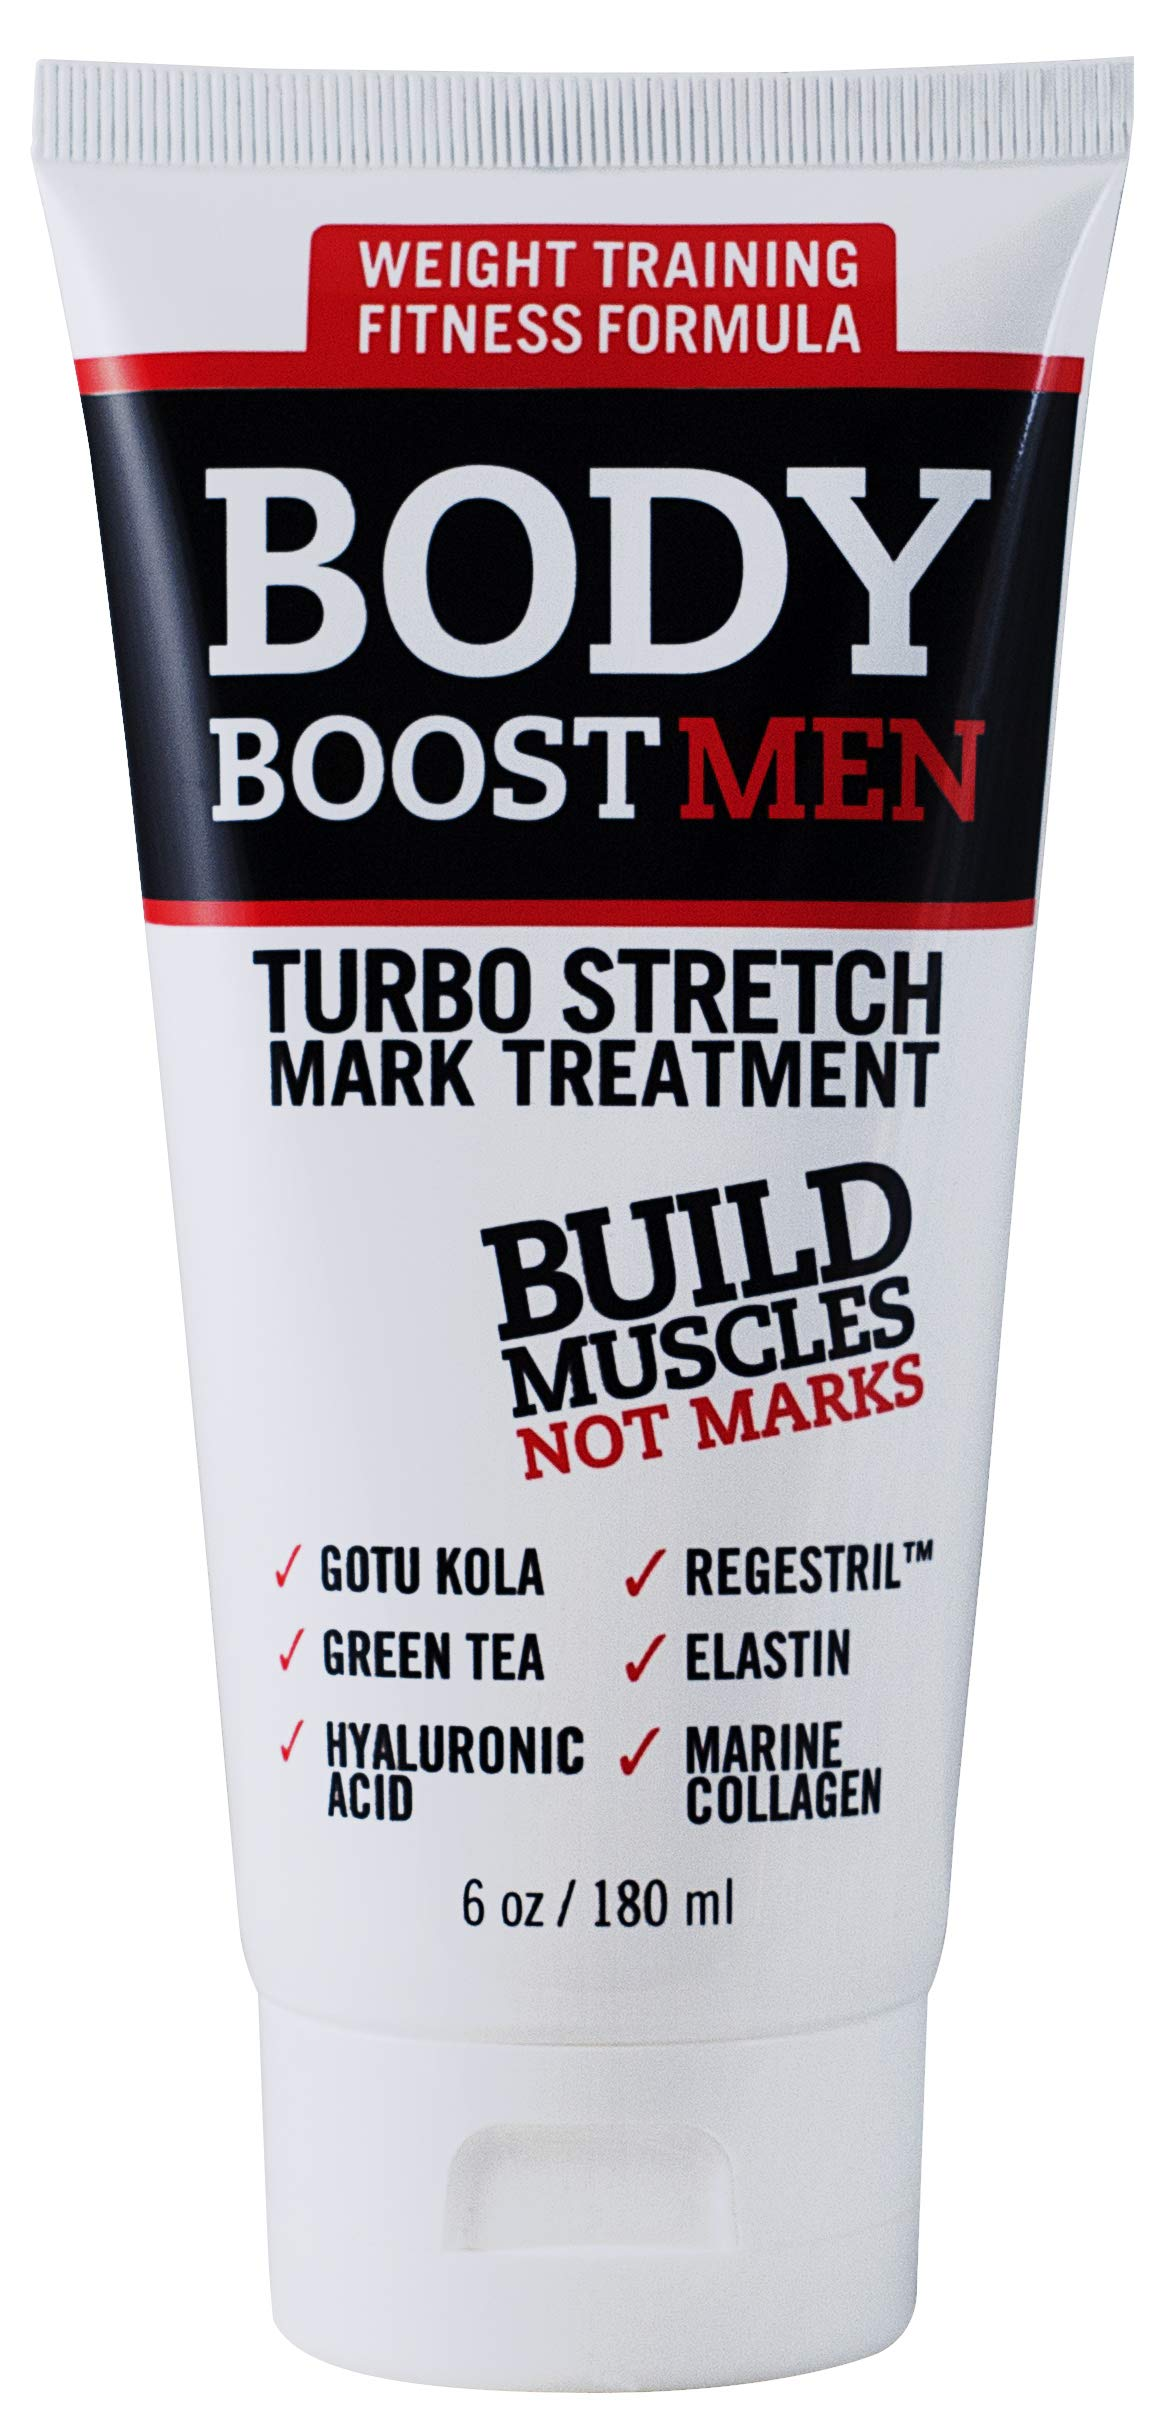 Body Boost Men Turbo Stretch Mark Treatment- Stretch Mark and Scar Treatment for Bodybuilding by Body Boost Men